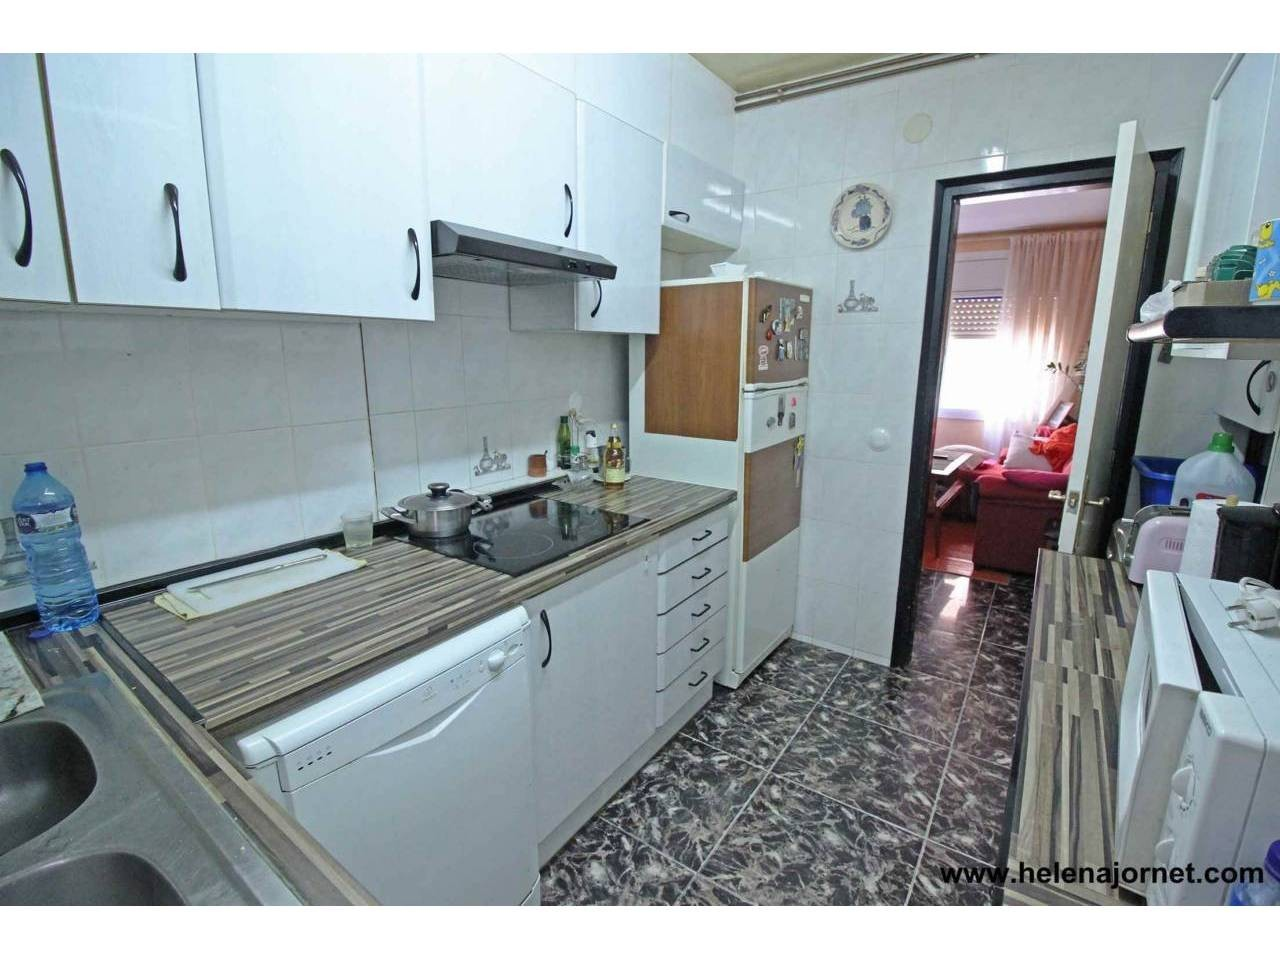 Apartment in the area of the Esclat.